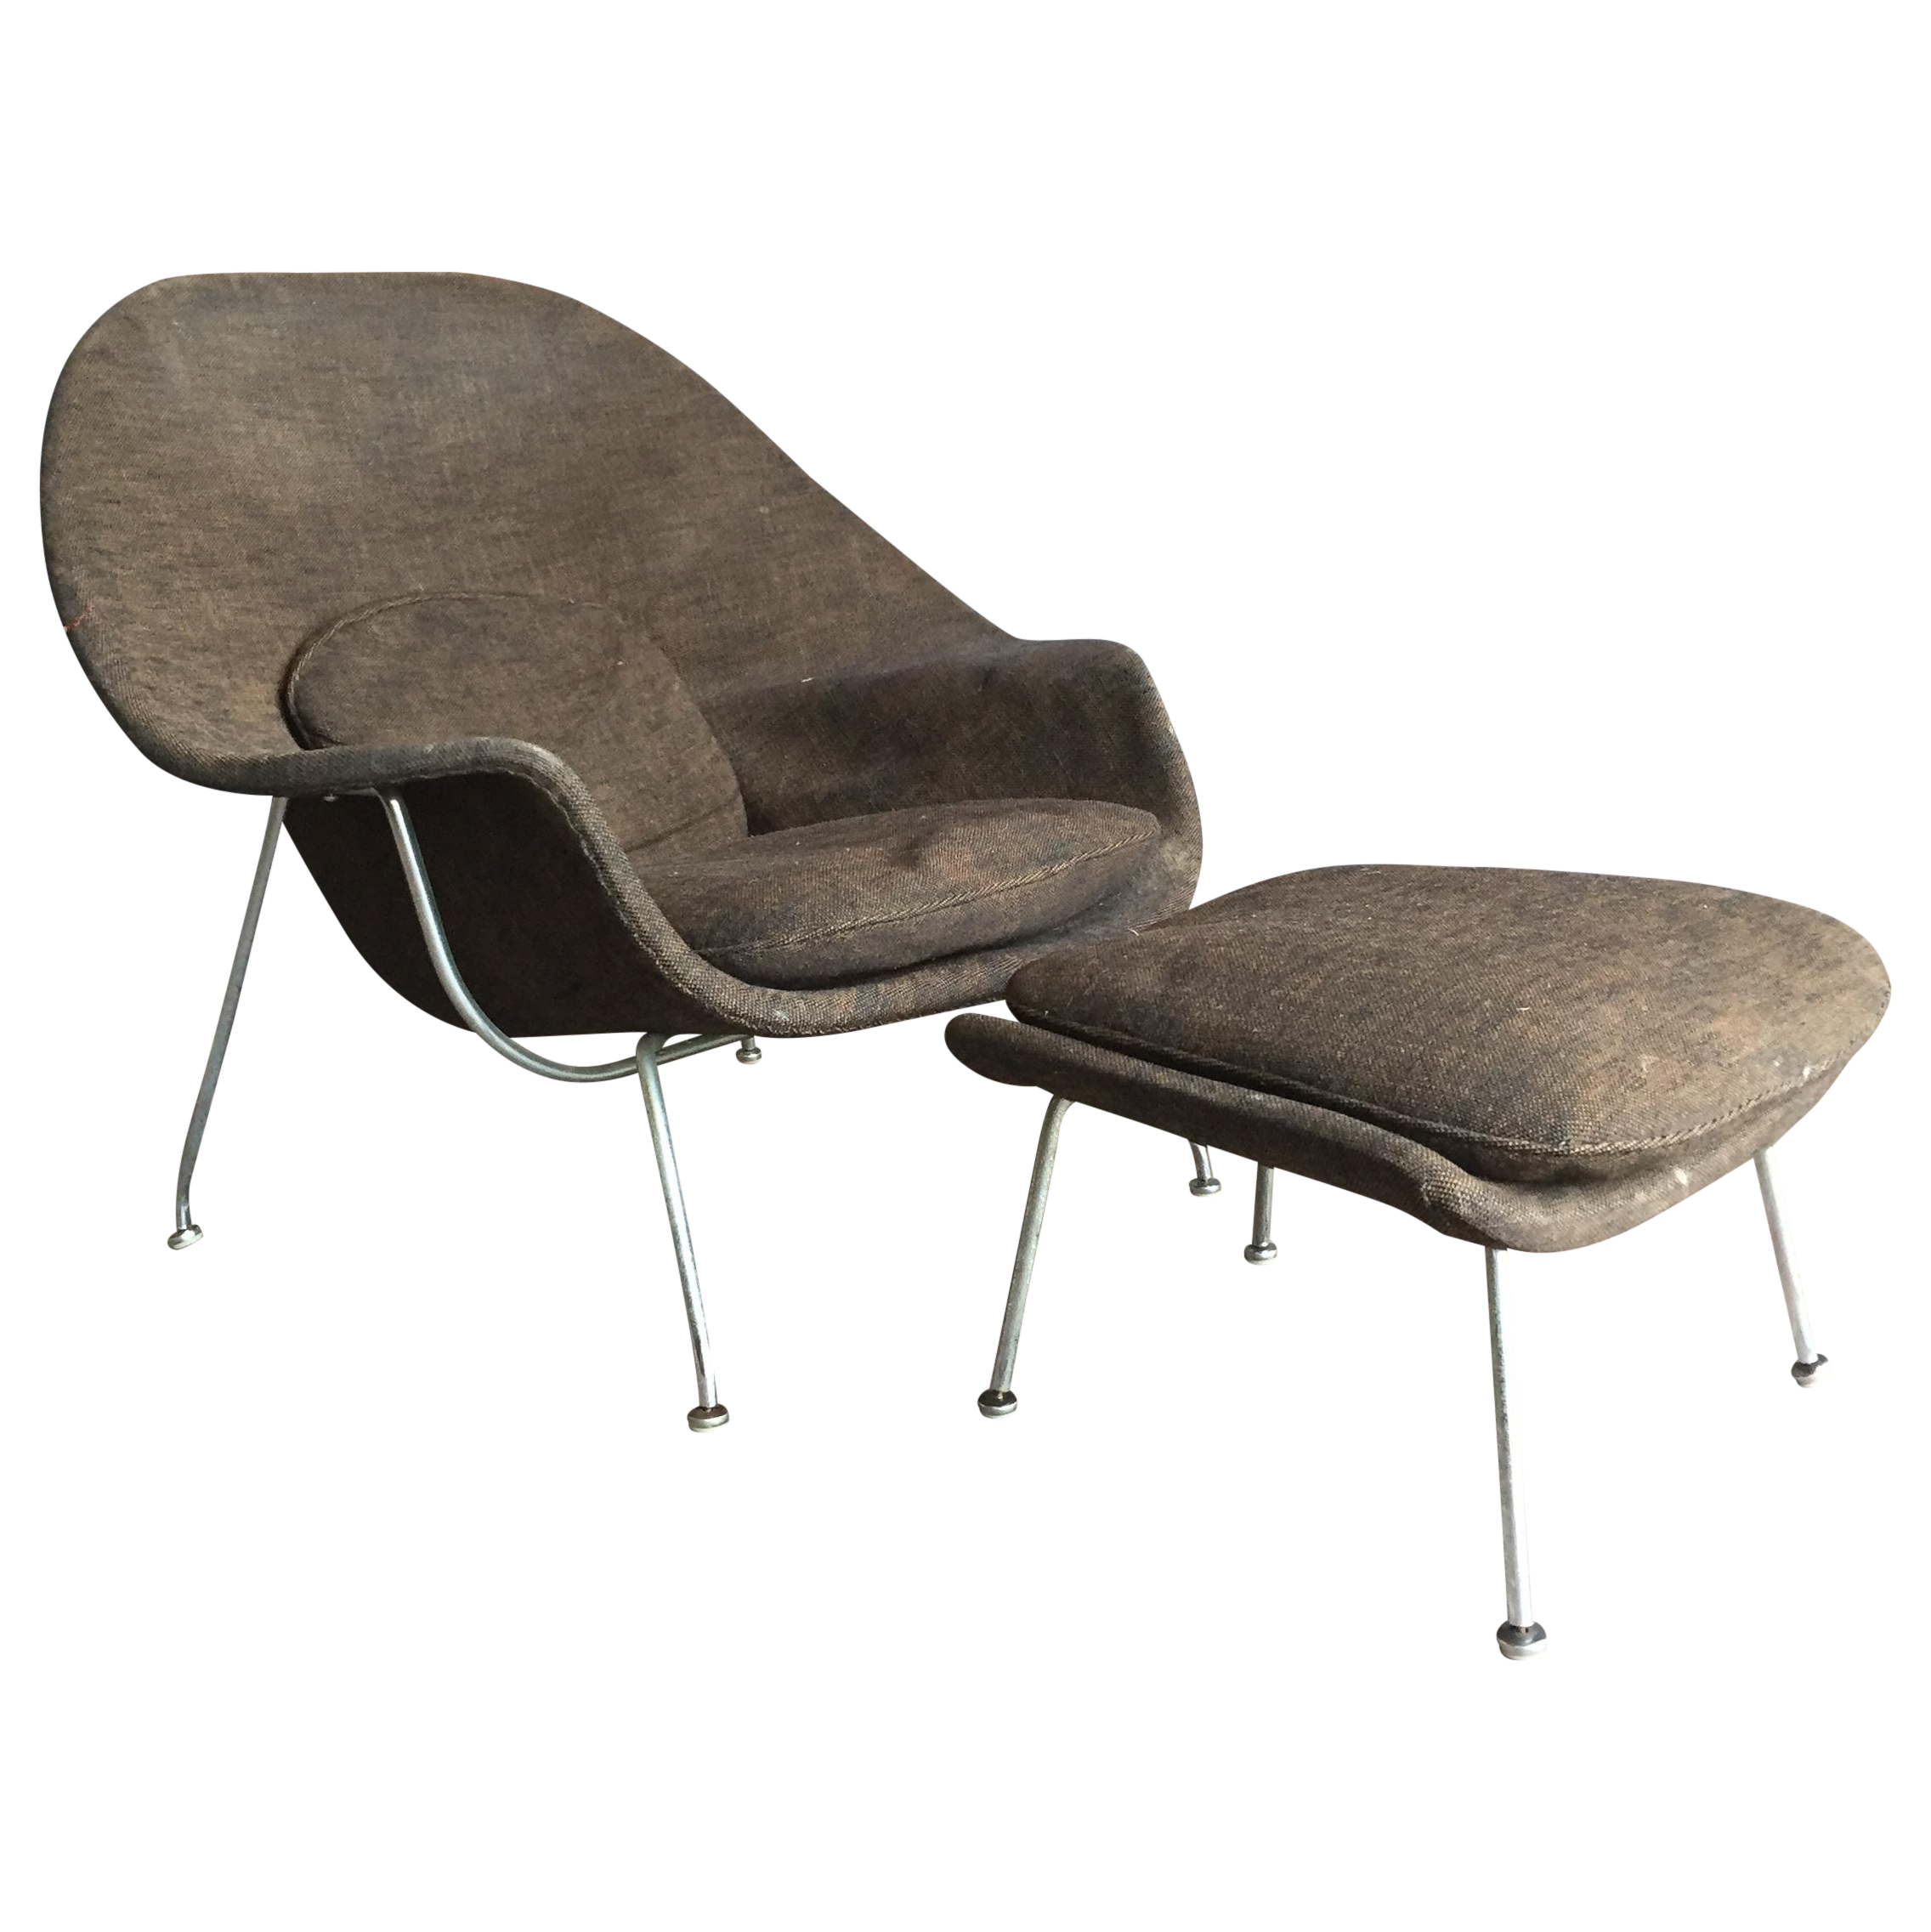 Eero Saarinen for Knoll Early Womb Chair & Ottoman | Chairish - Image of Eero Saarinen for Knoll Early Womb Chair & Ottoman